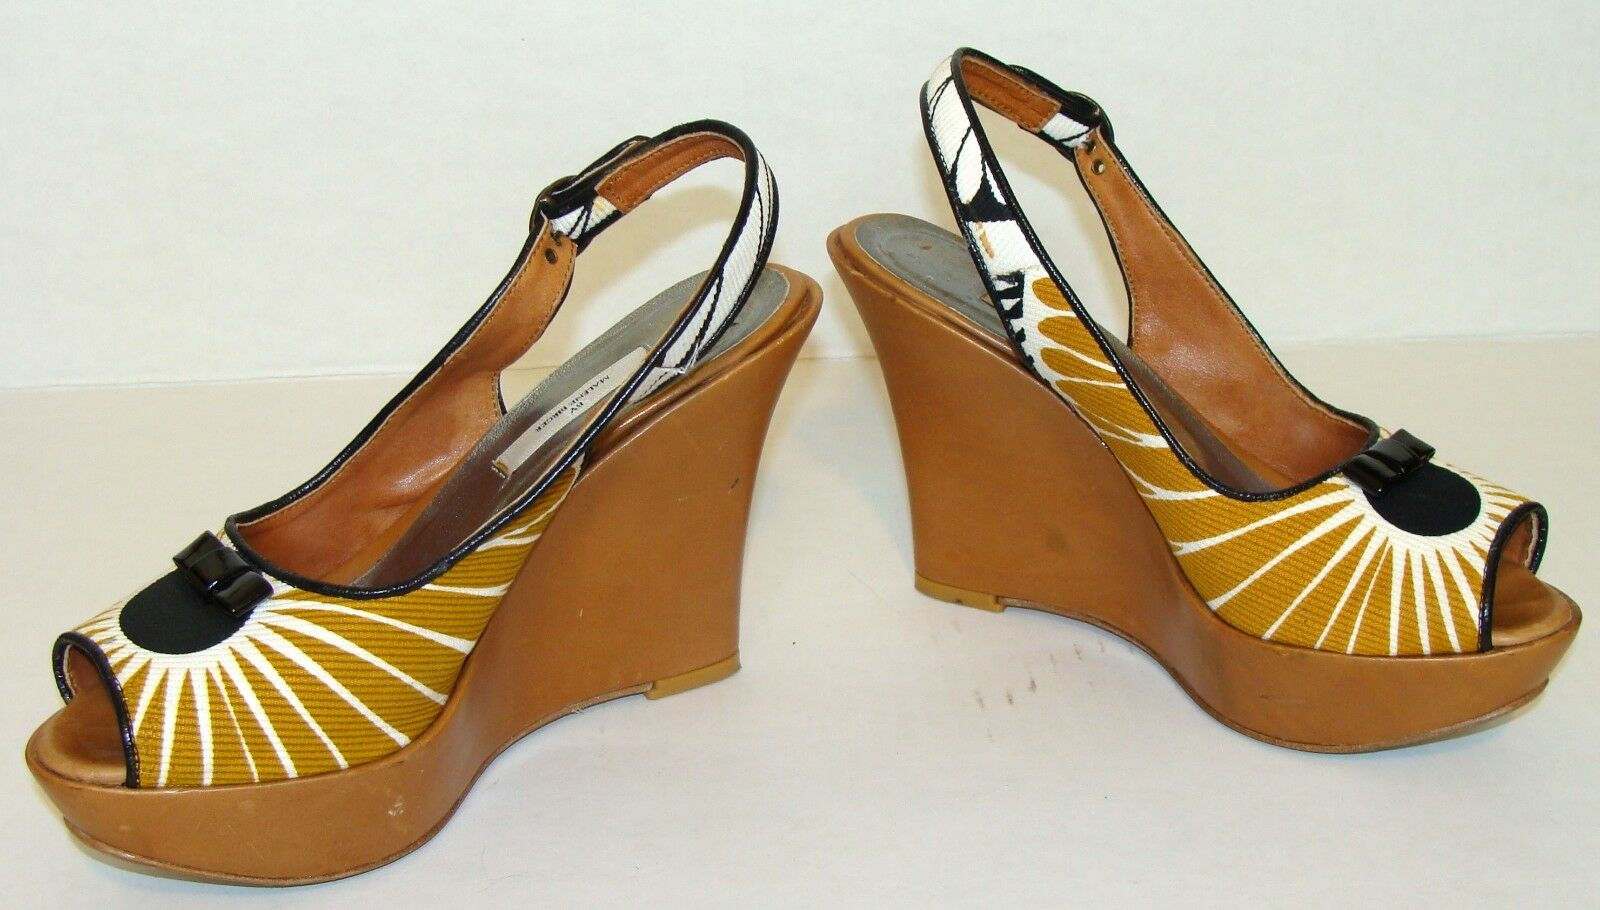 BY MALENE BIRGER TAN SLINGBACK WEDGE SANDALS SHOES SHOES SANDALS SIZE 40 / US 10  A131 b29786